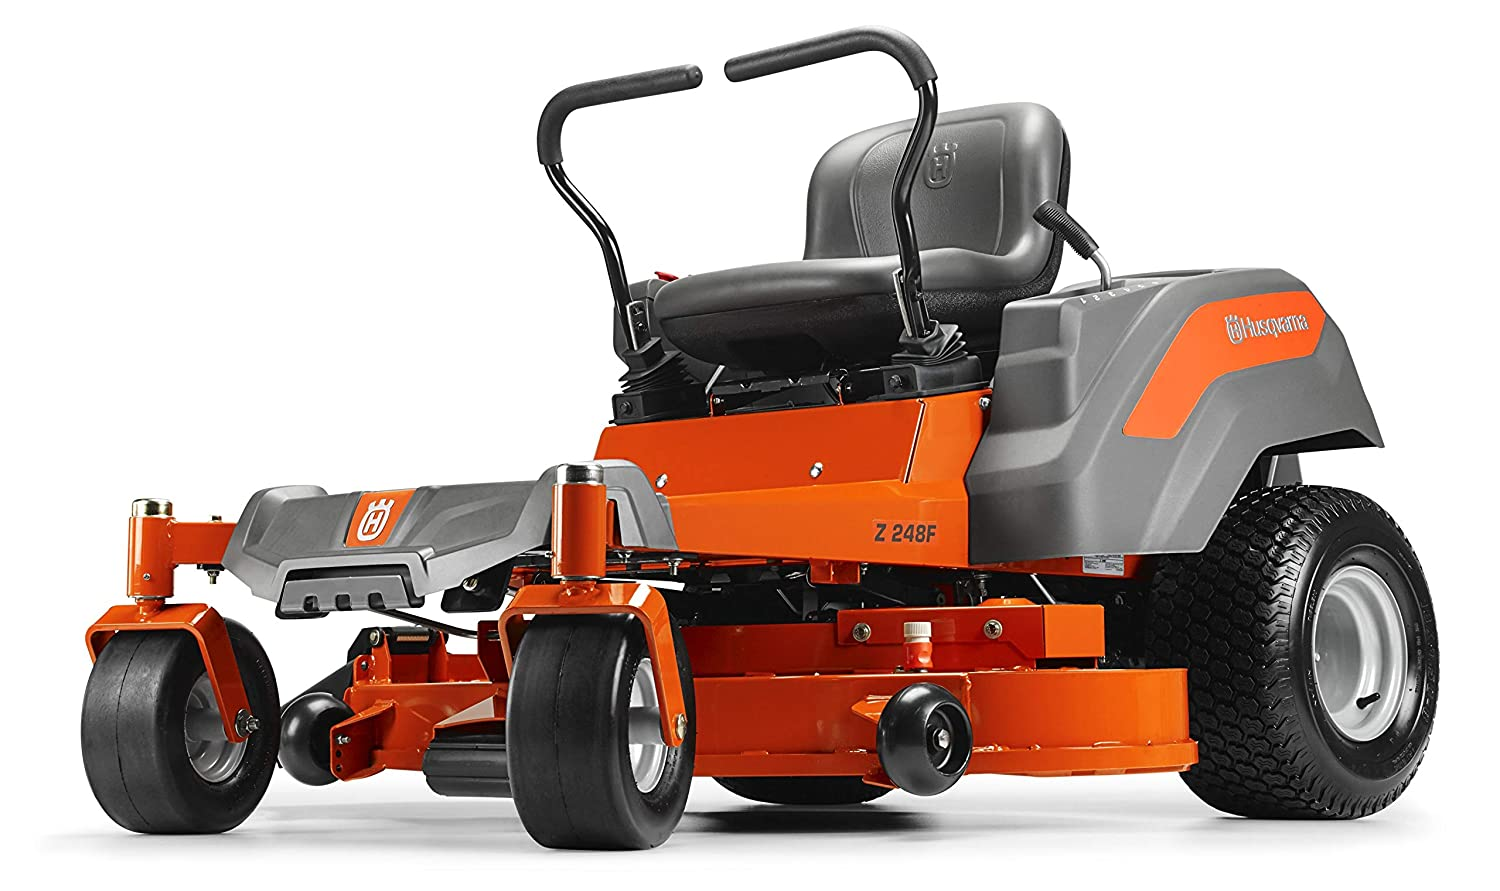 4. Husqvarna Z248F Z-Turn Mower - Most Fuel Efficient Zero Turn Mower